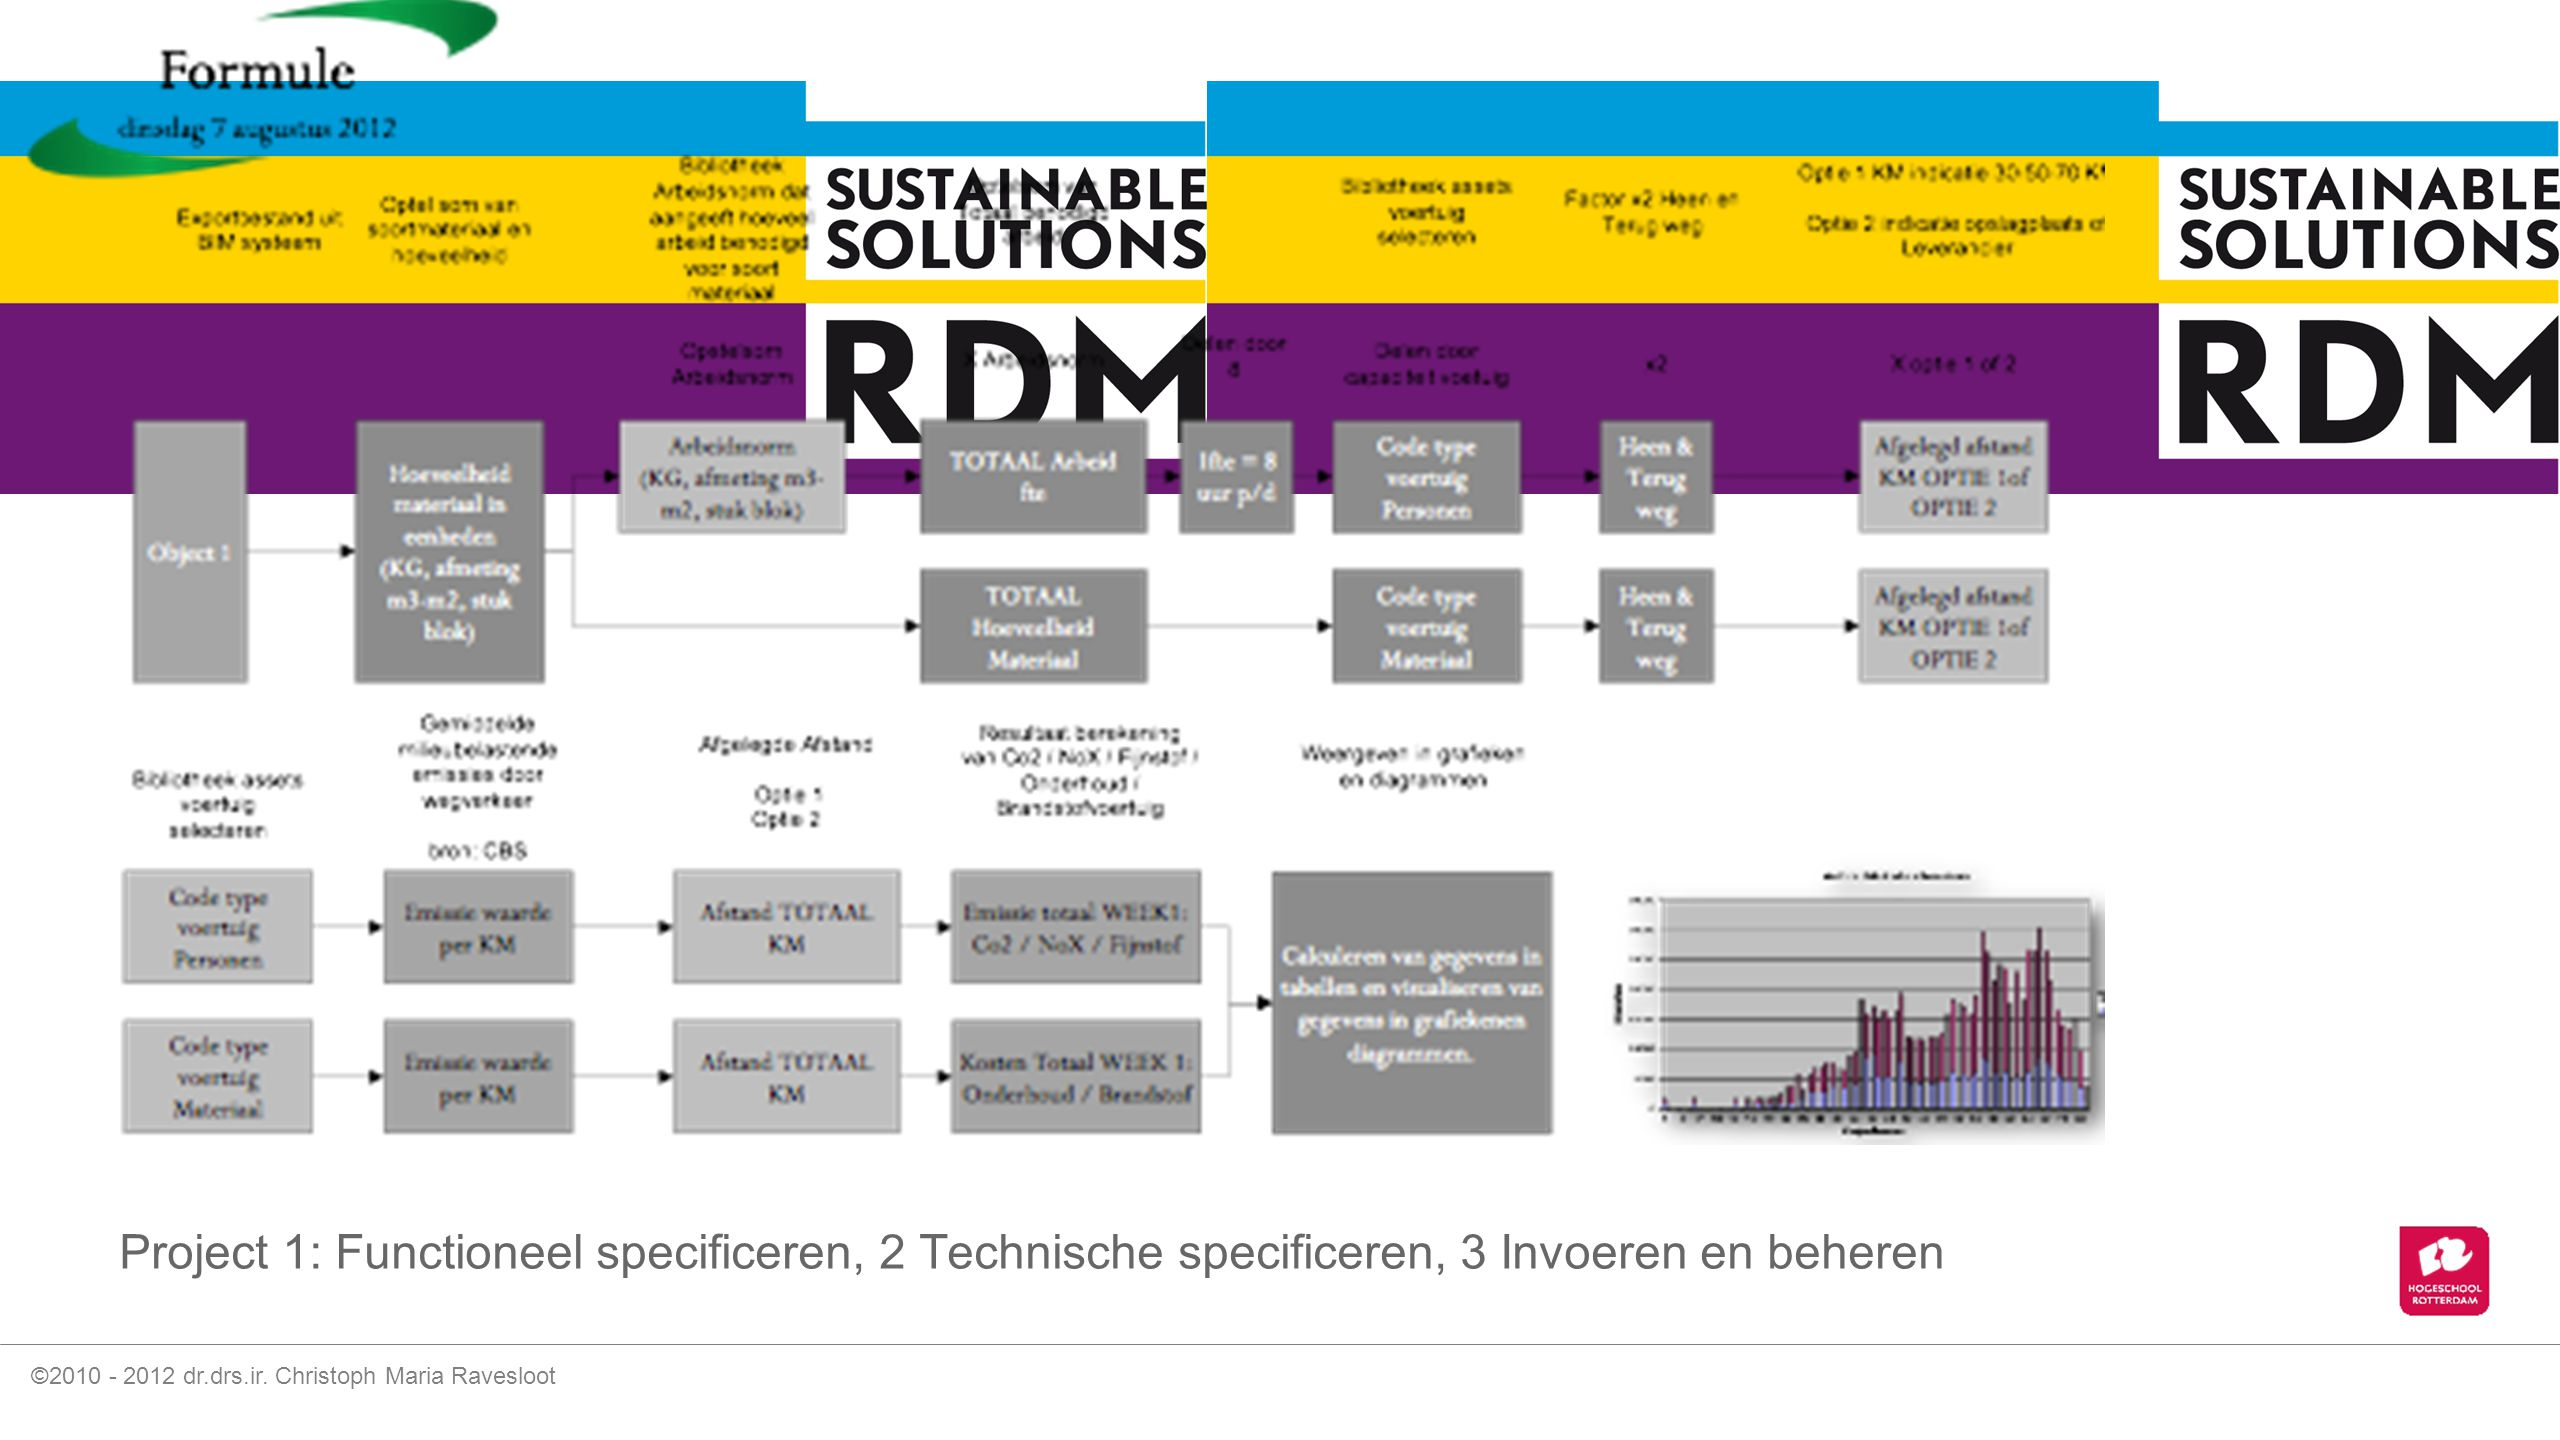 Project 1: Functioneel specificeren, 2 Technische specificeren, 3 Invoeren en beheren